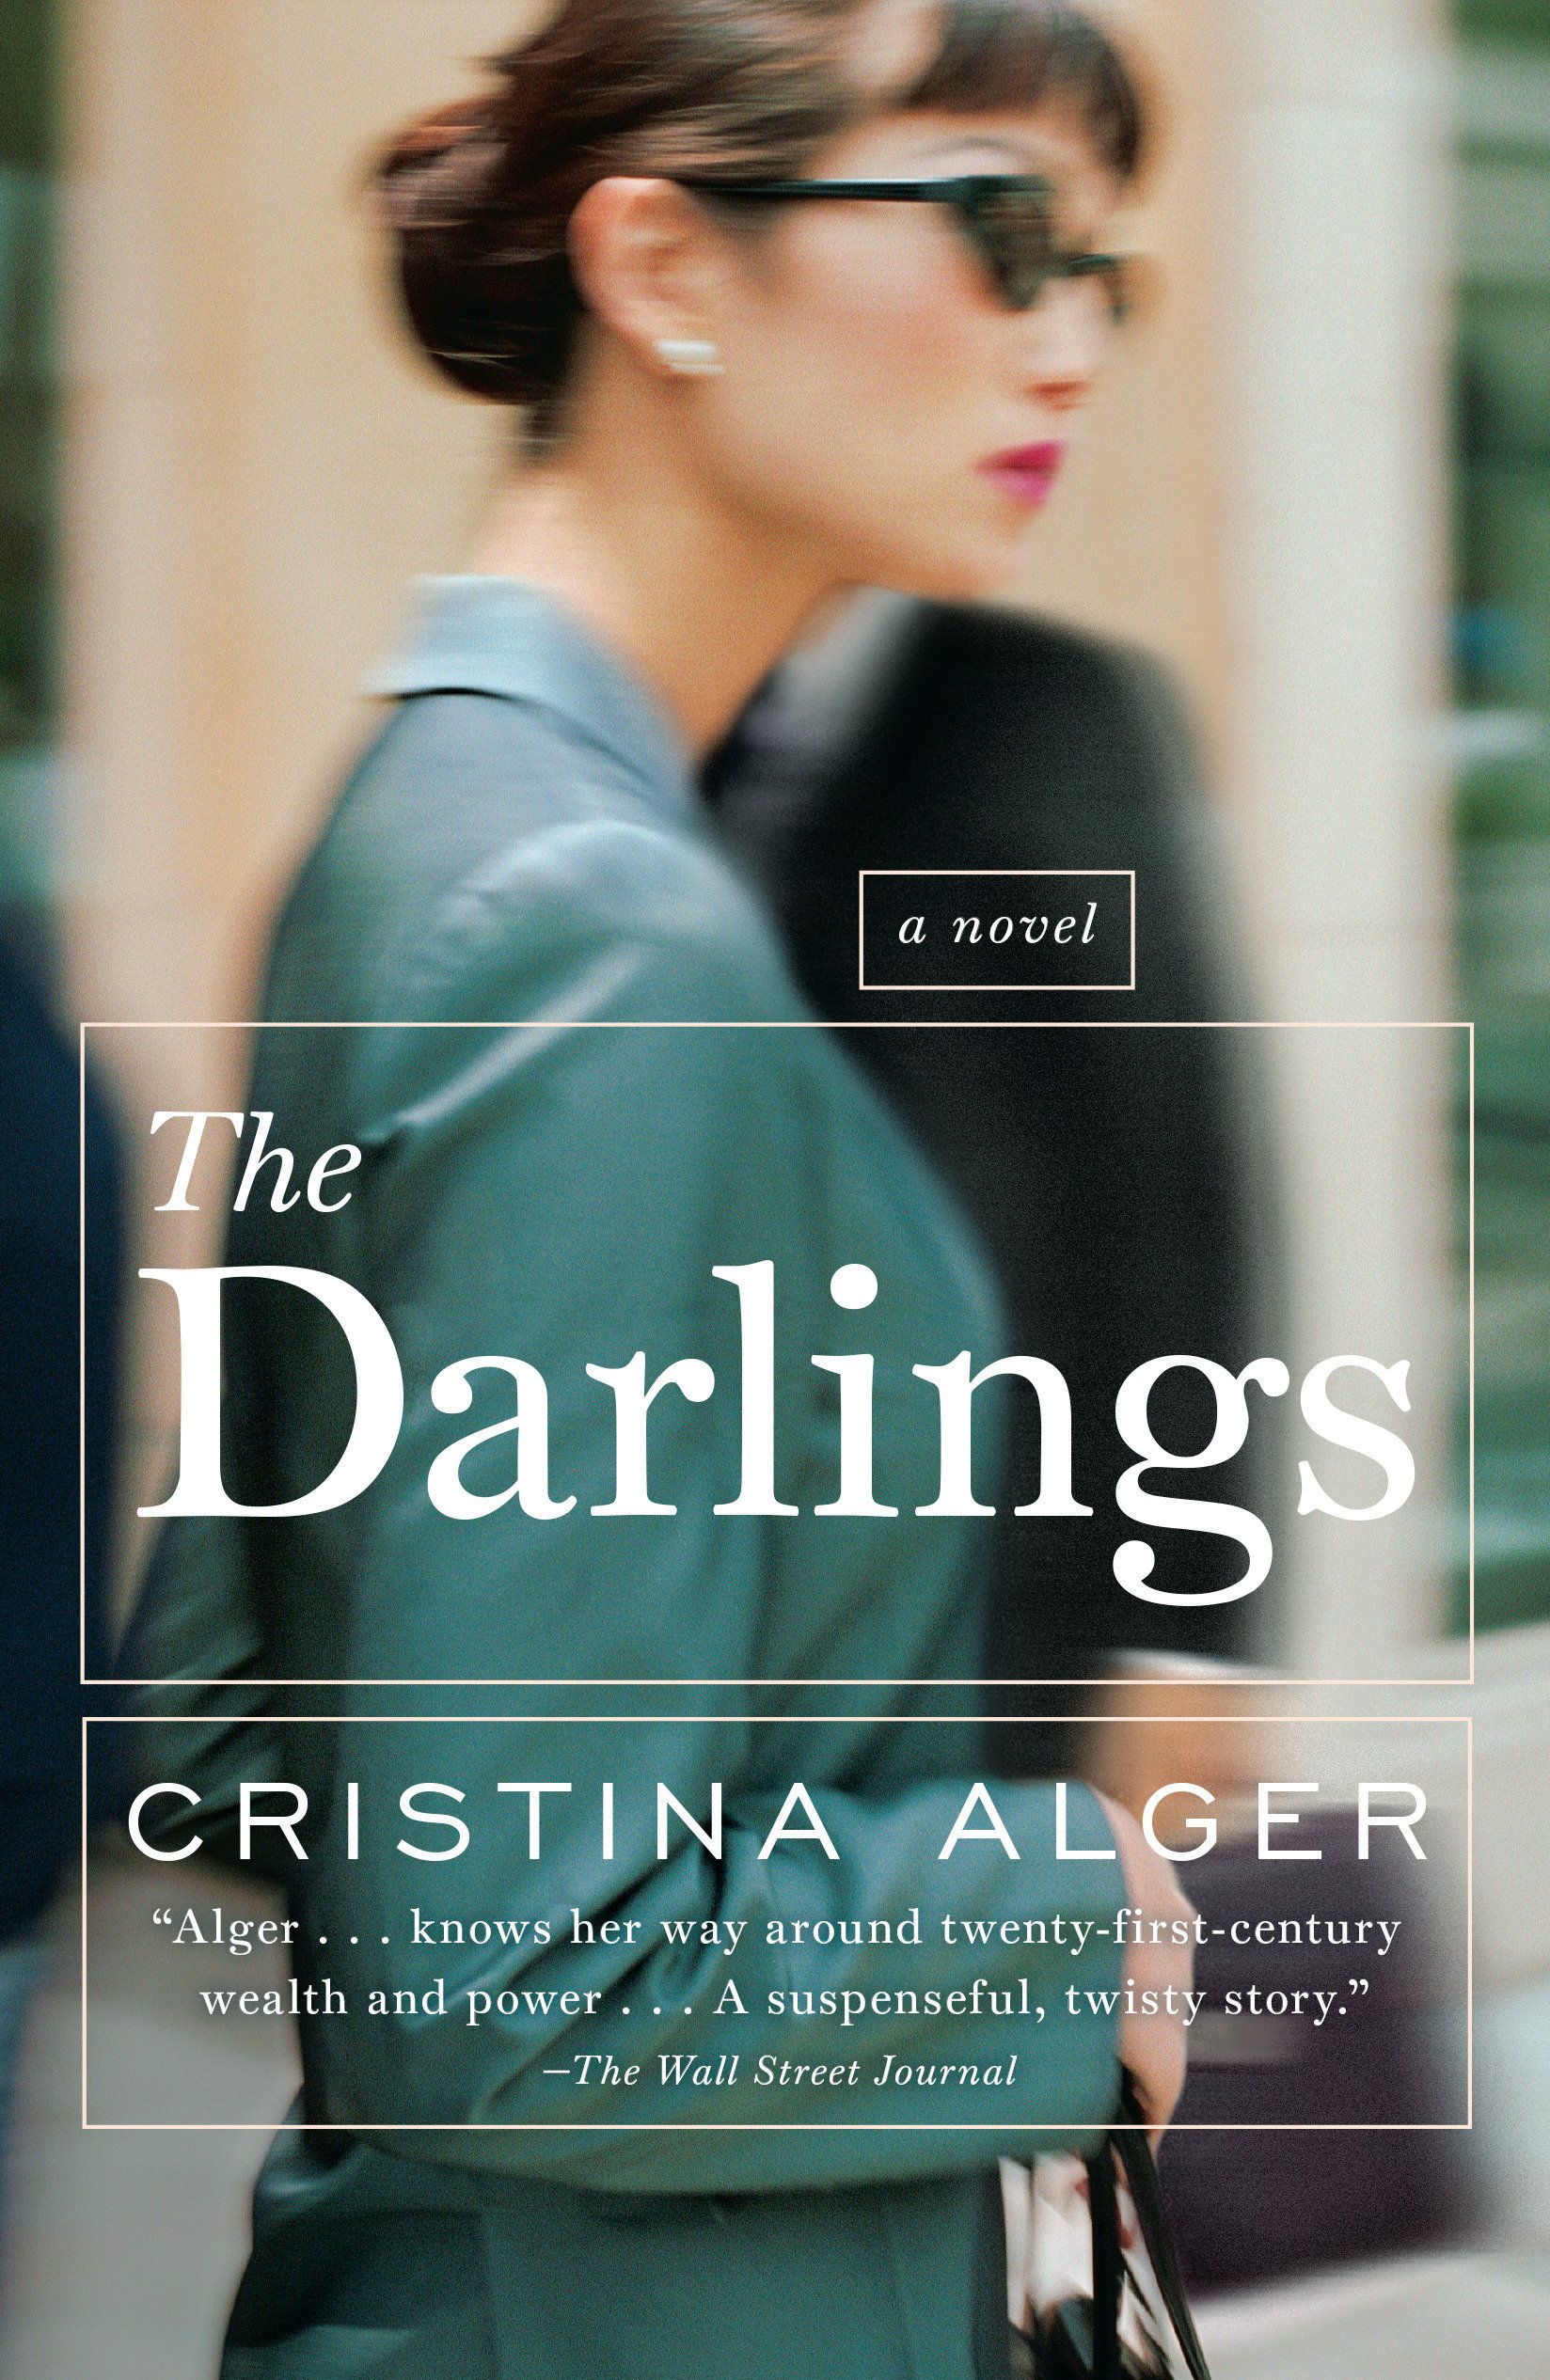 The Darlings: A Novel ePub fb2 book